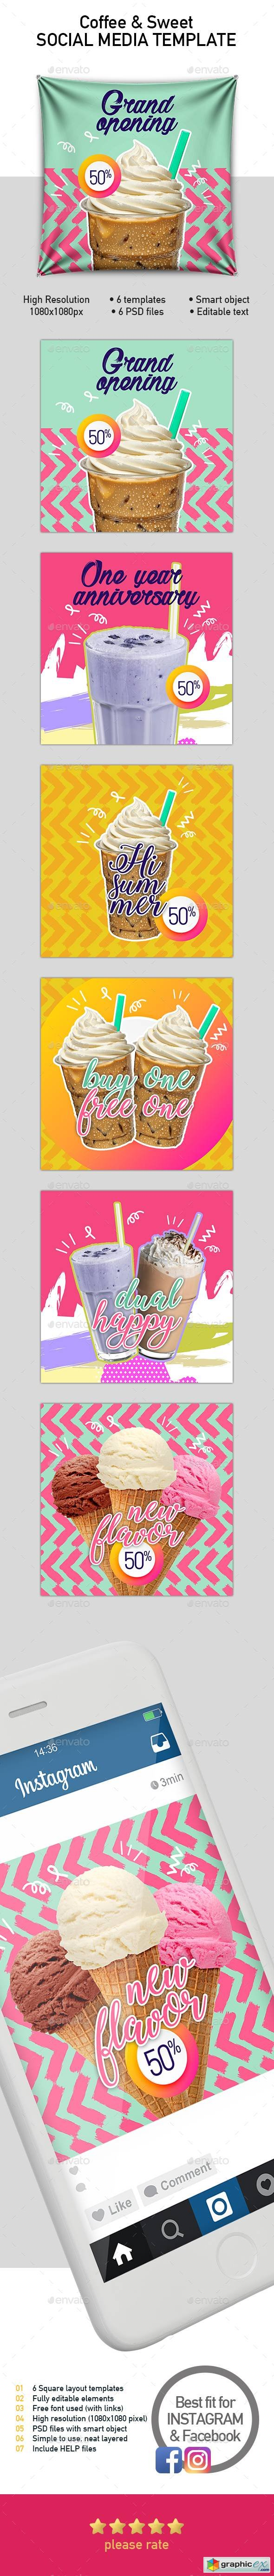 Set 6 Instagram Templates for Food and Drinks Business